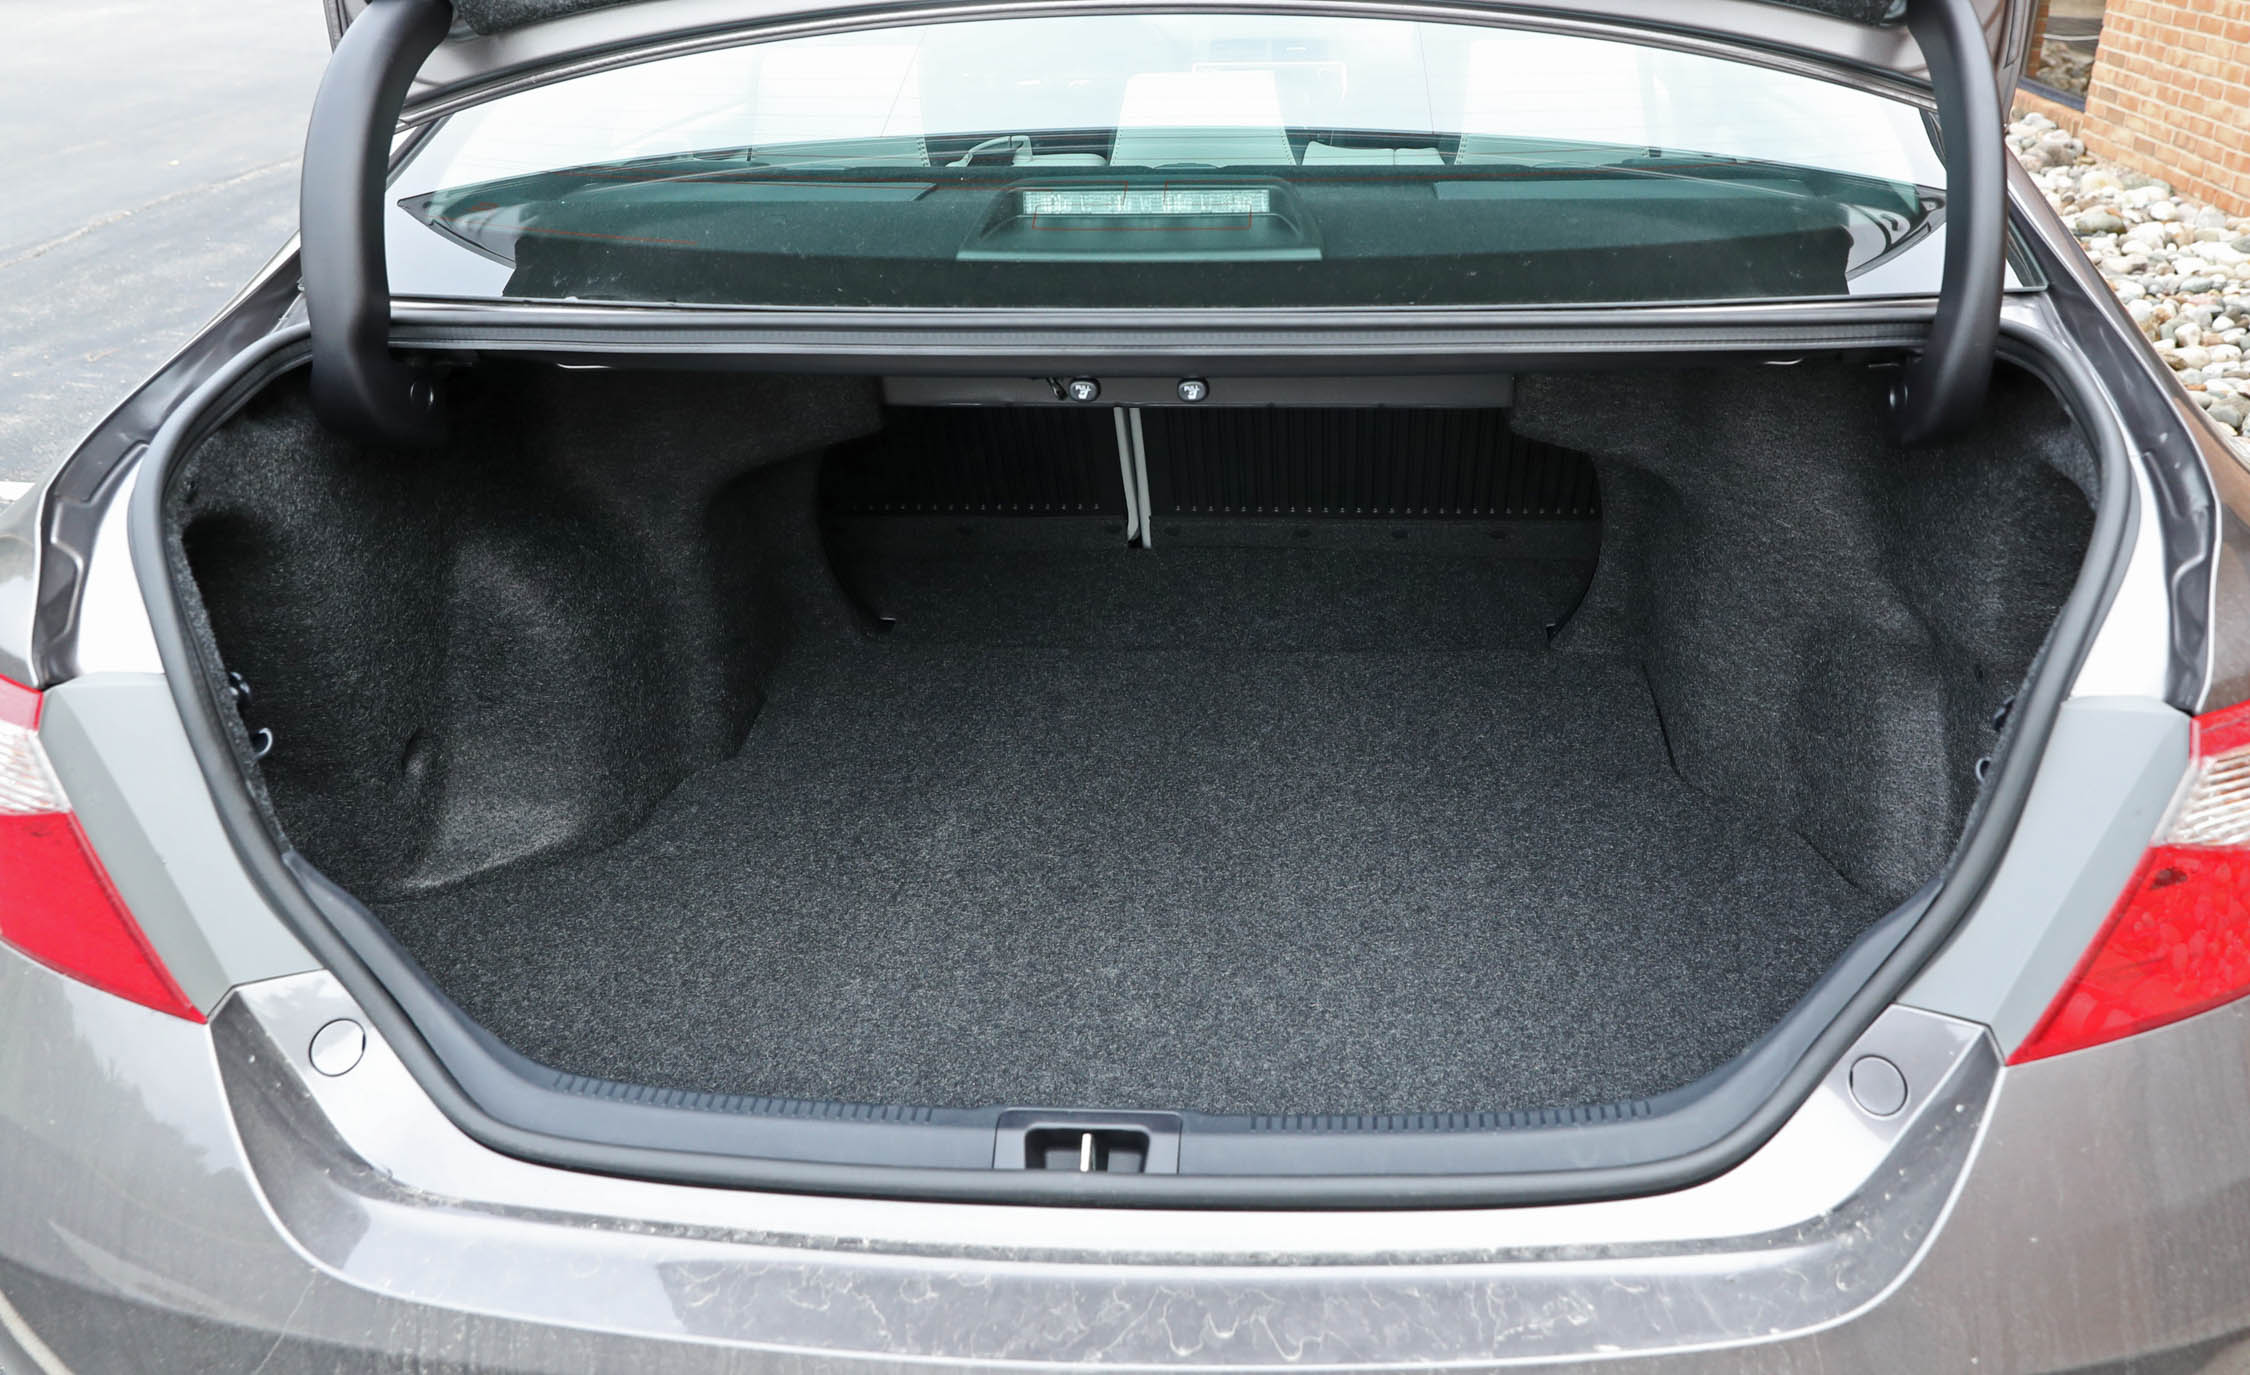 2017 Toyota Camry Interior View Cargo Trunk (Photo 22 of 37)